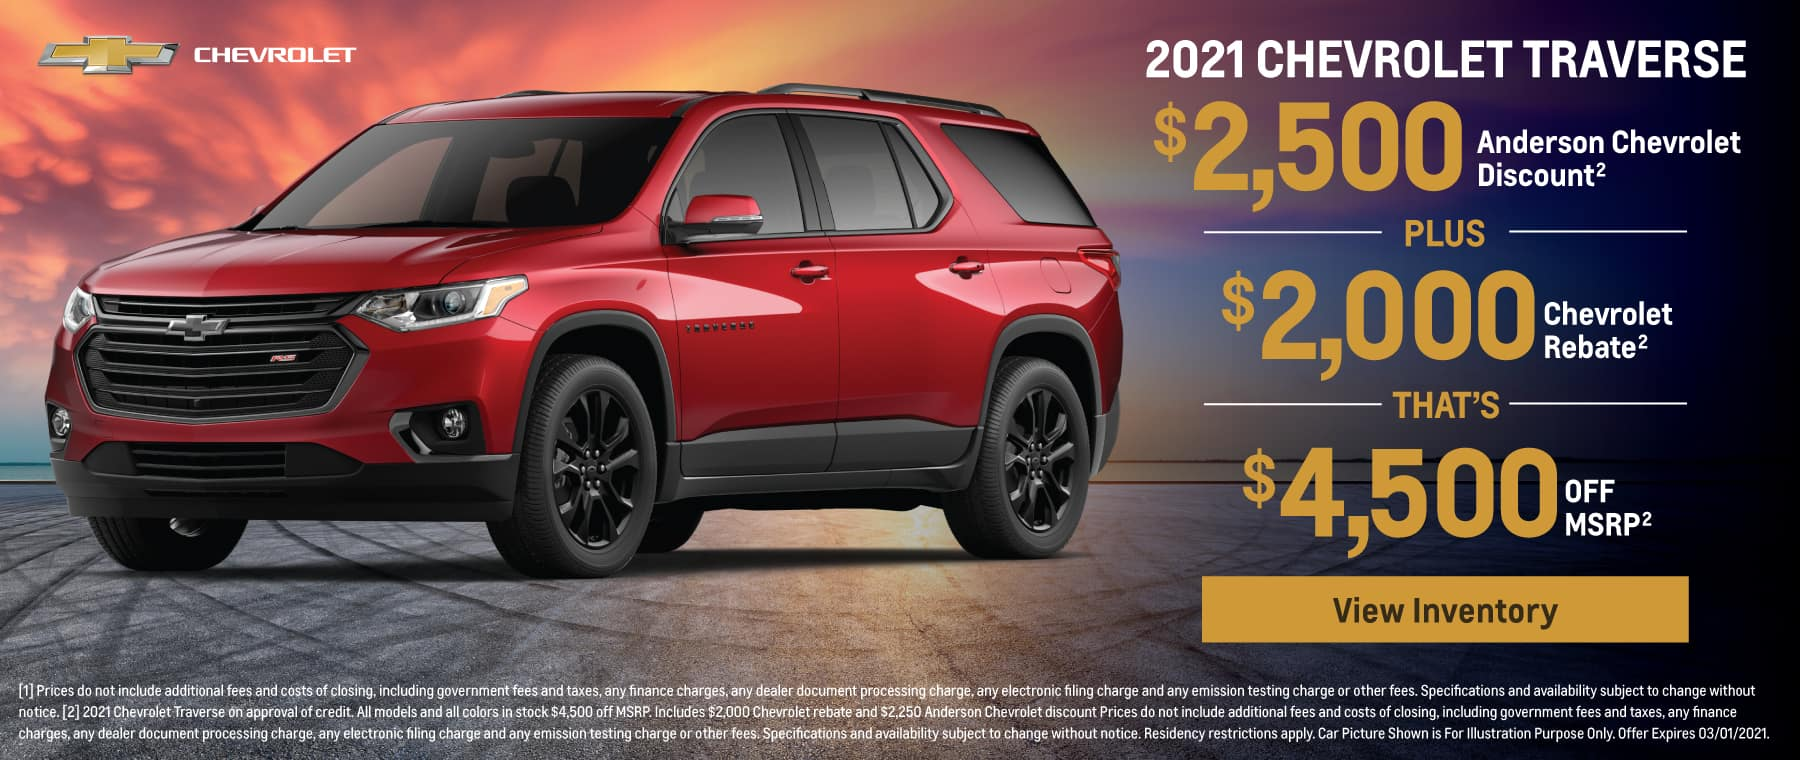 Save up to $4,500 off MSRP